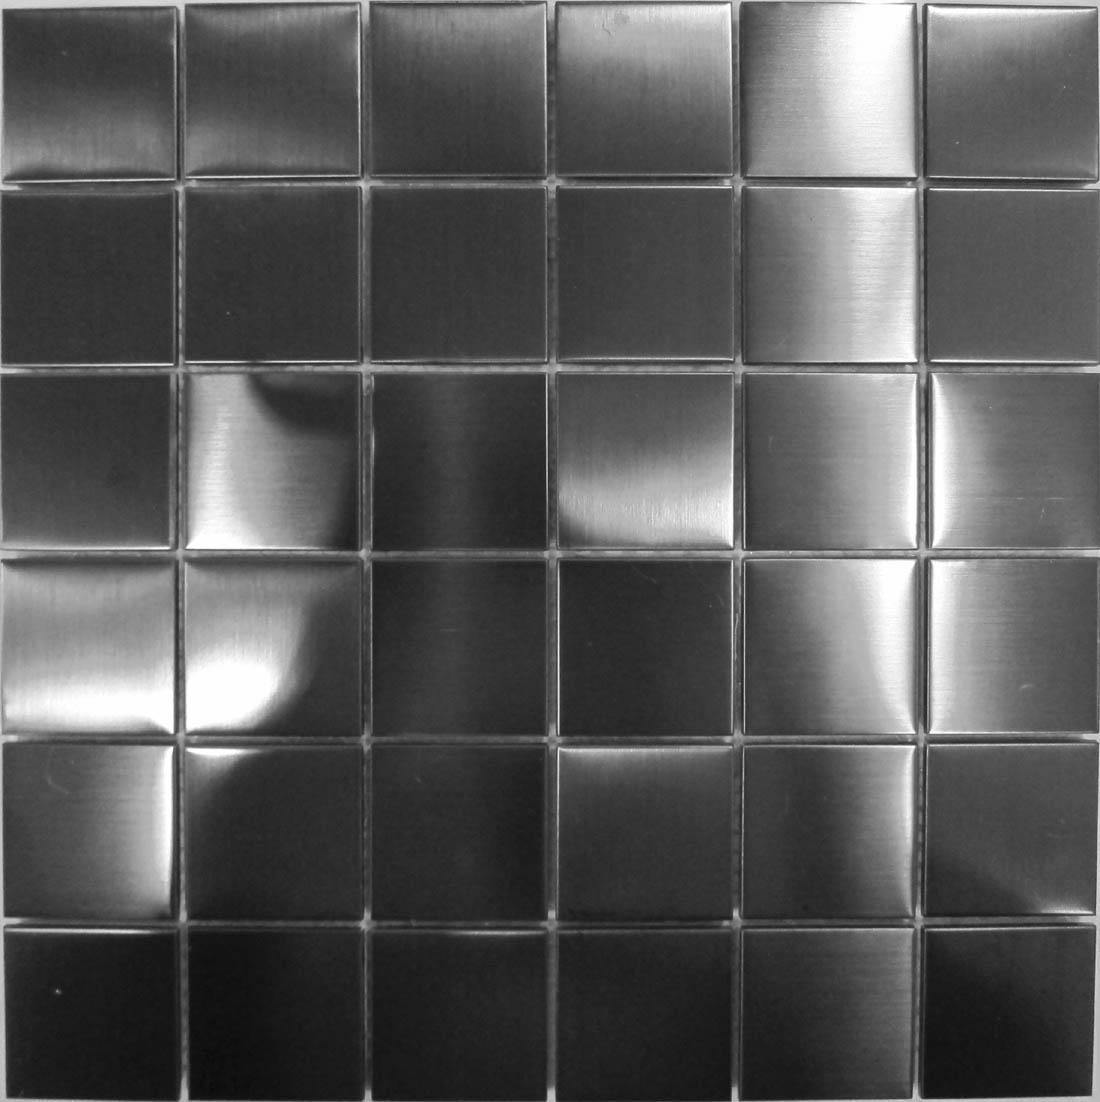 Kitchen Tiles Ebay: Stainless Steel Mosaic Wall Tiles Black Metallic Brushed Bathroom Kitchen MT0003